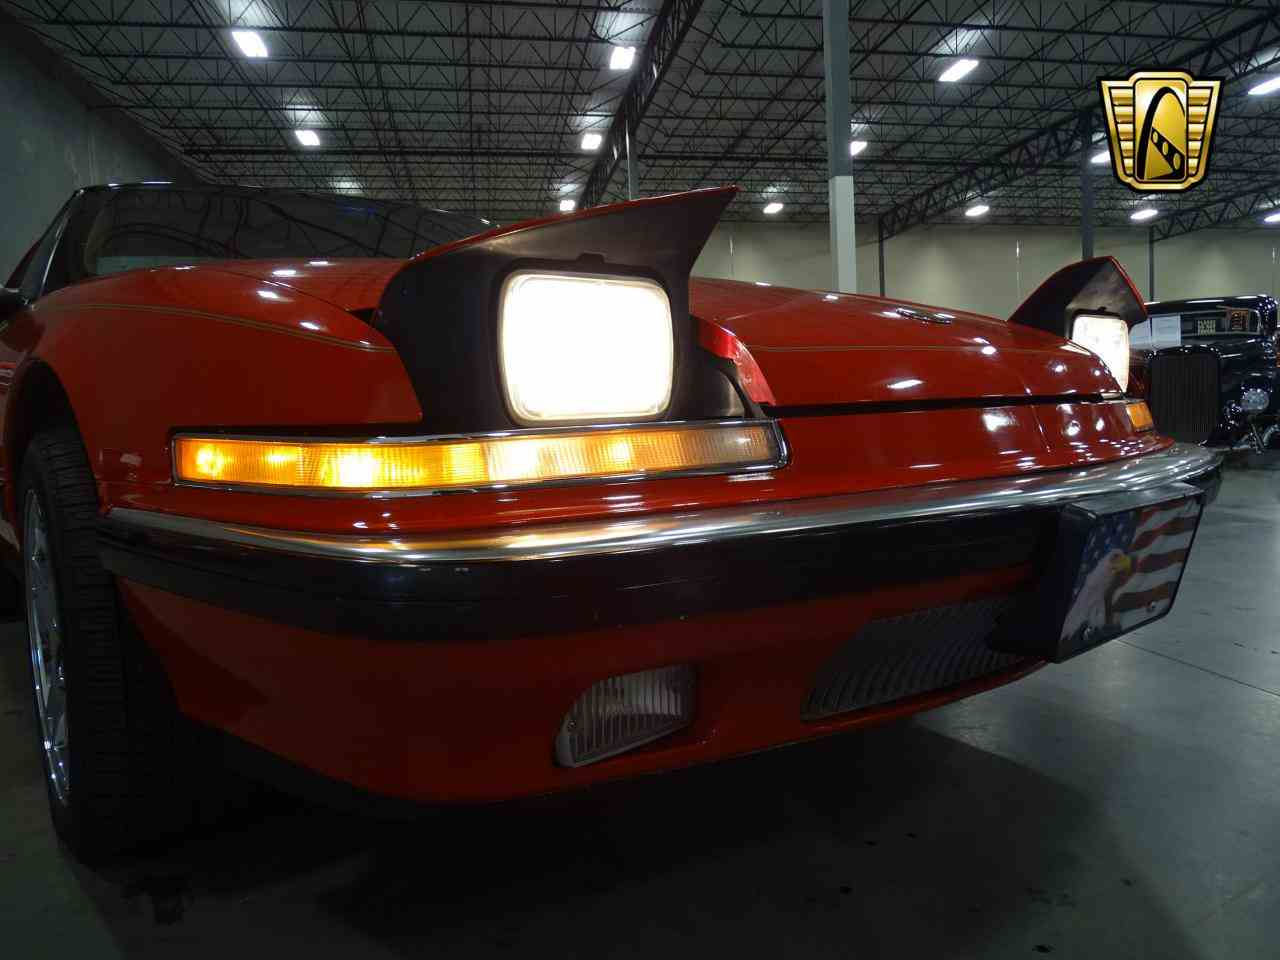 Large Picture of '90 Buick Reatta located in DFW Airport Texas - $8,995.00 - KOB1